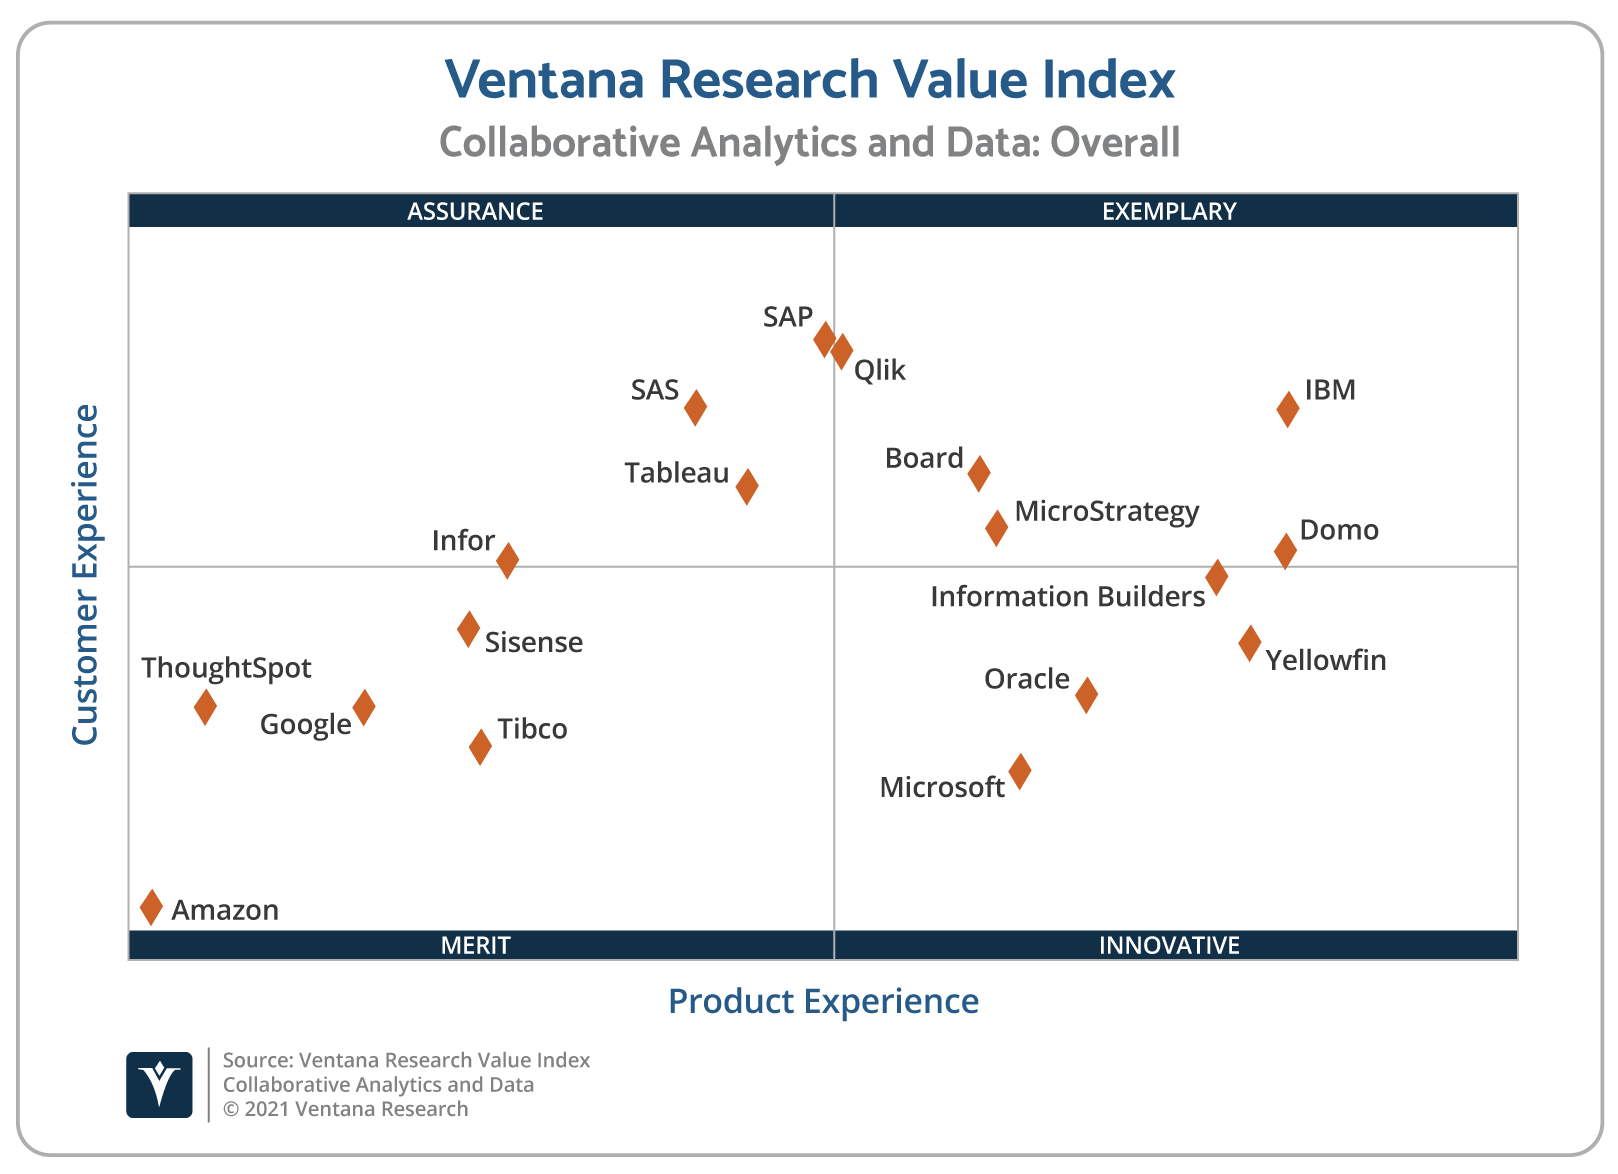 Ventana_Research_Value_Index_Collaborative_Analytics_and_Data_2021_Scatter